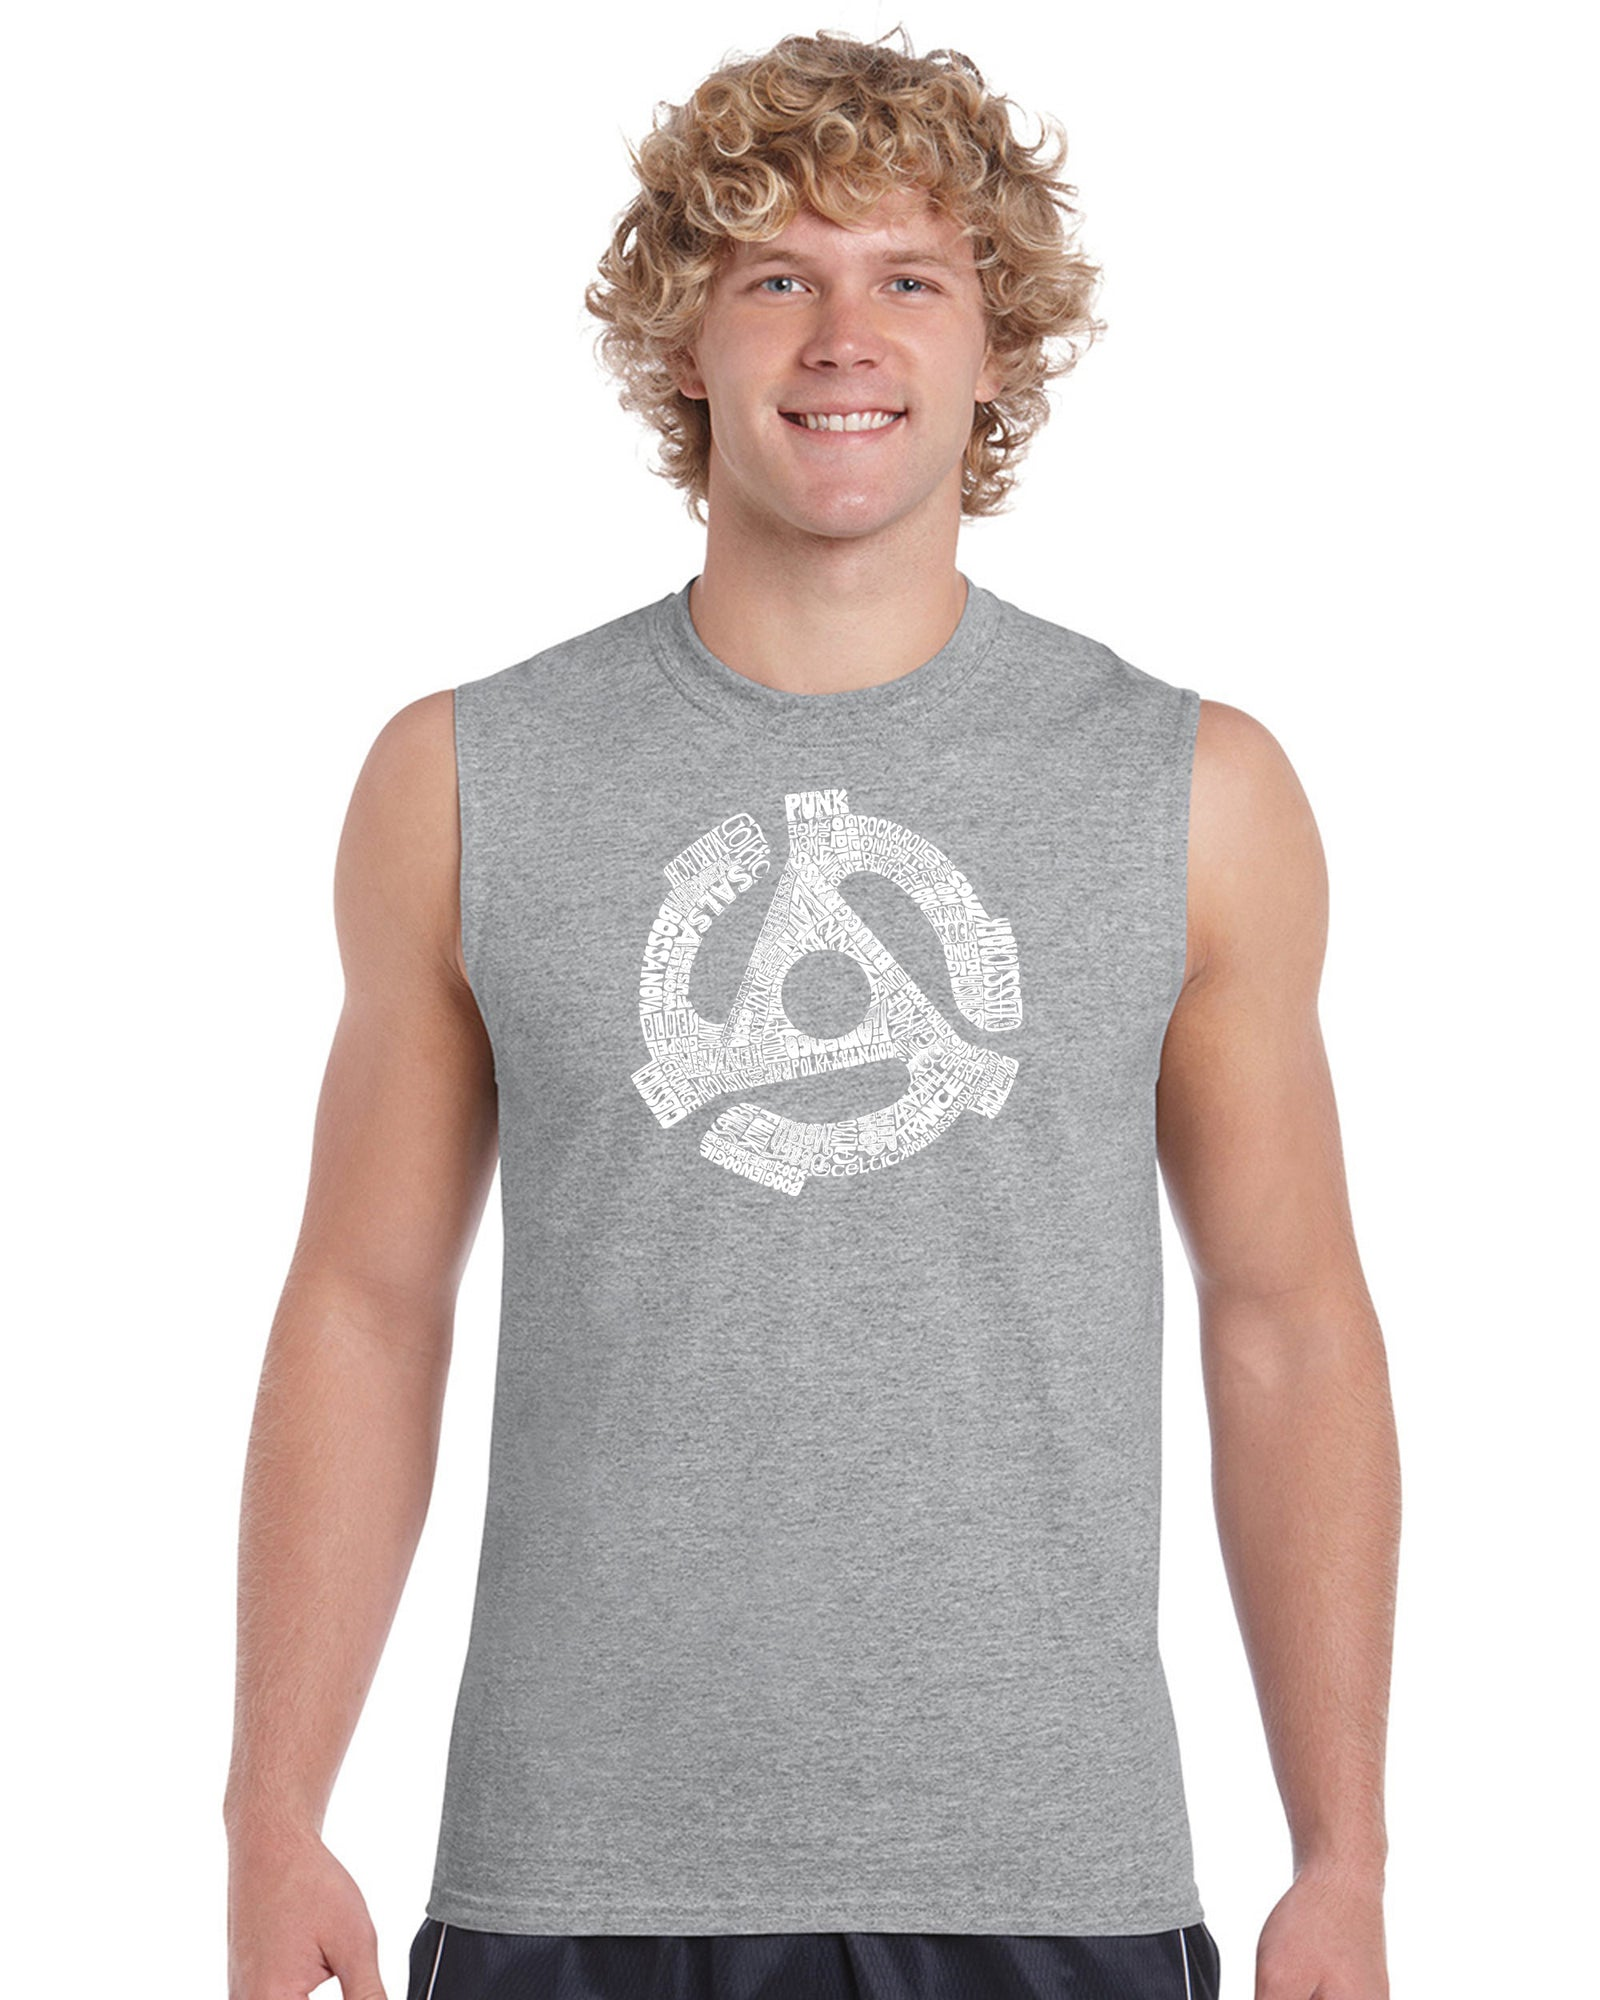 Men's Sleeveless T-shirt - Record Adapter